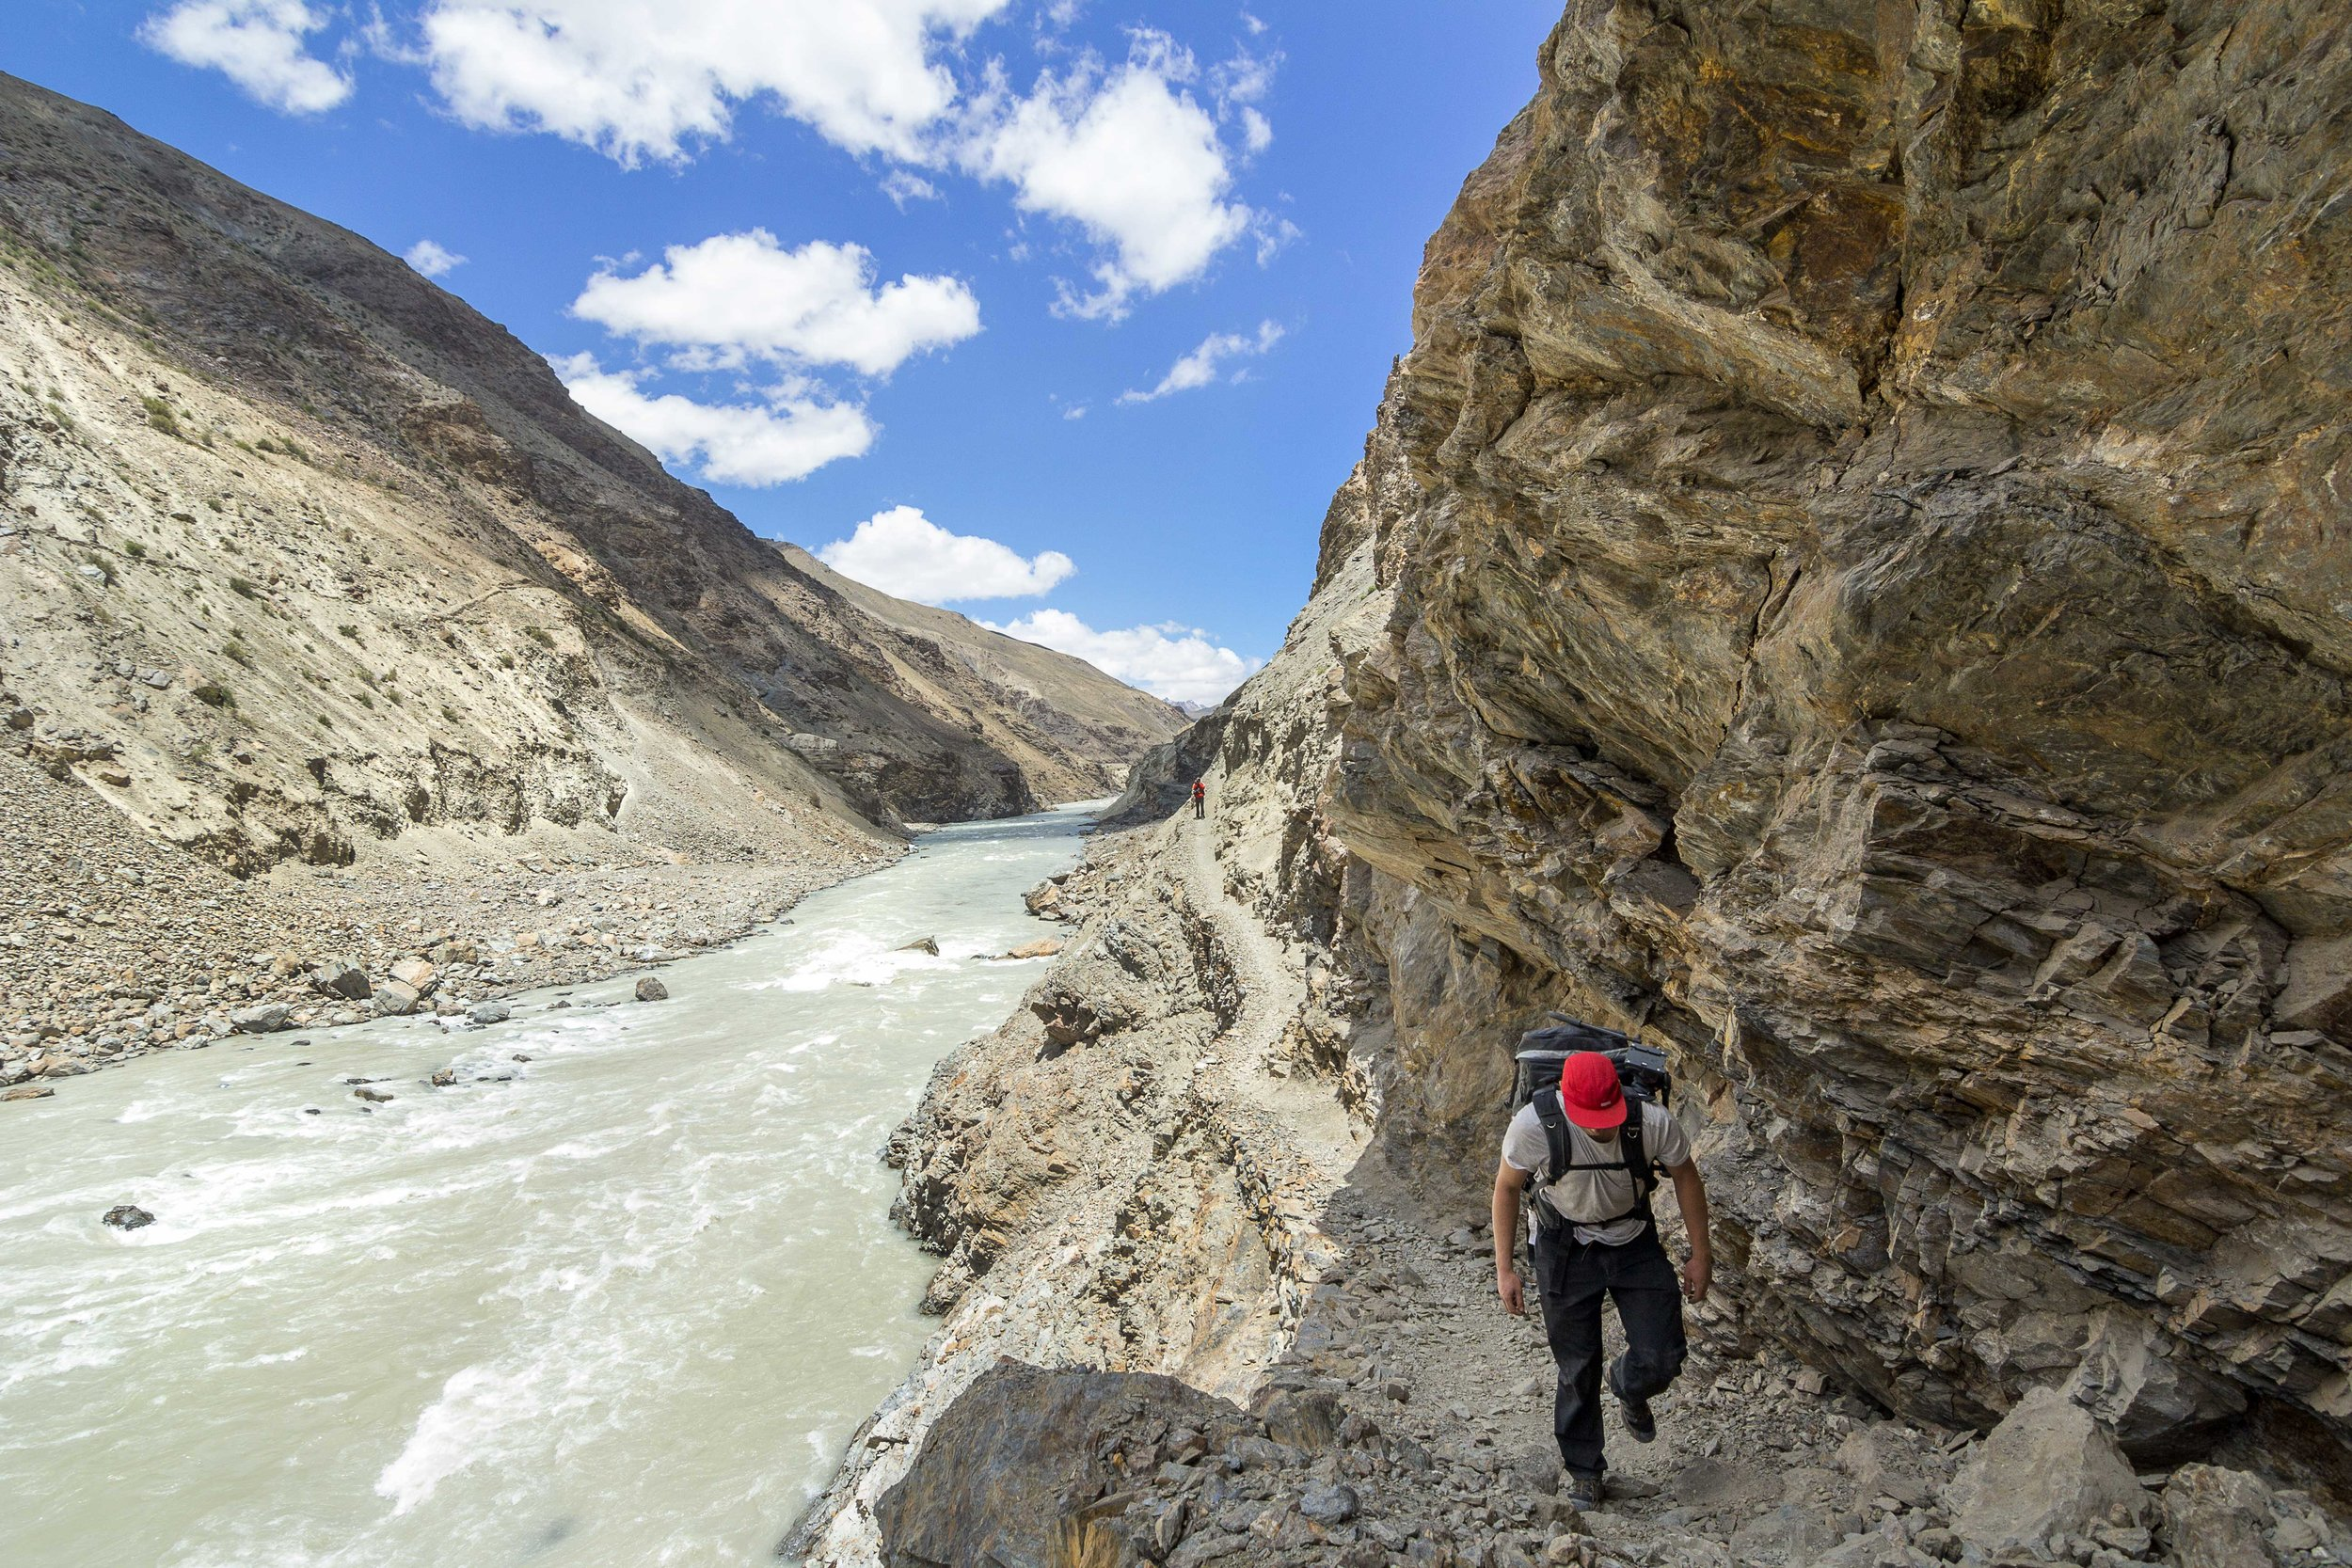 Our self supported expedition took us to winding narrow ridges next to fast flowing rivers. Most of the trail was either broken or submerged by the floods that had hit the region in 2010.